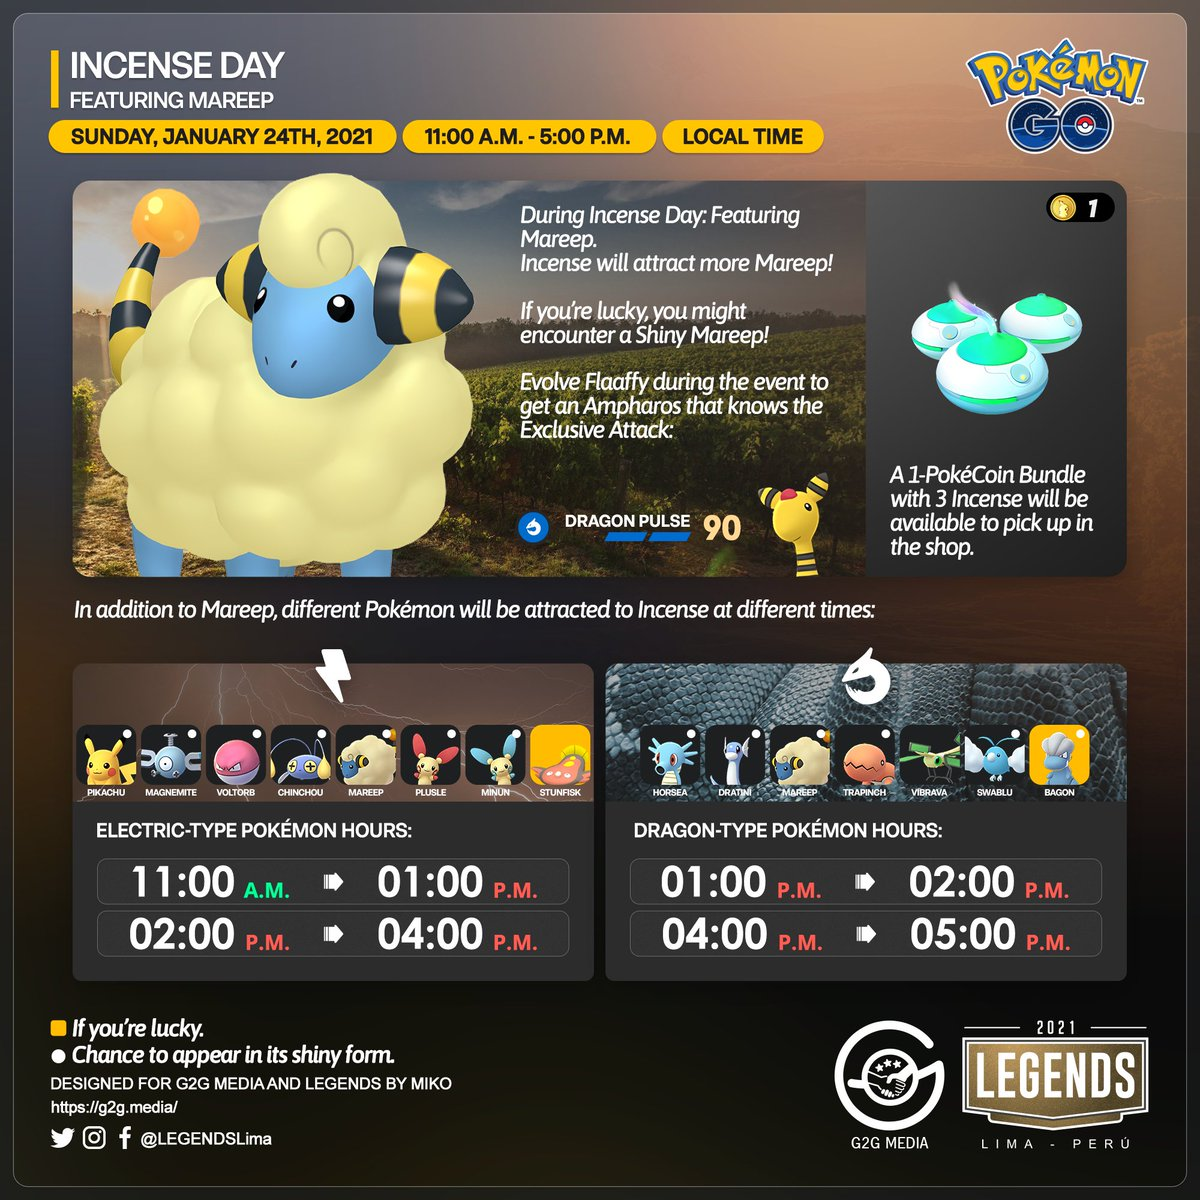 🇺🇸 Incense Day: #Electric and #Dragon-type Pokémon, featuring #Mareep!  It is about to start soon.  Let's see all the details.  #PokémonGOApp #G2G #PokémonGO